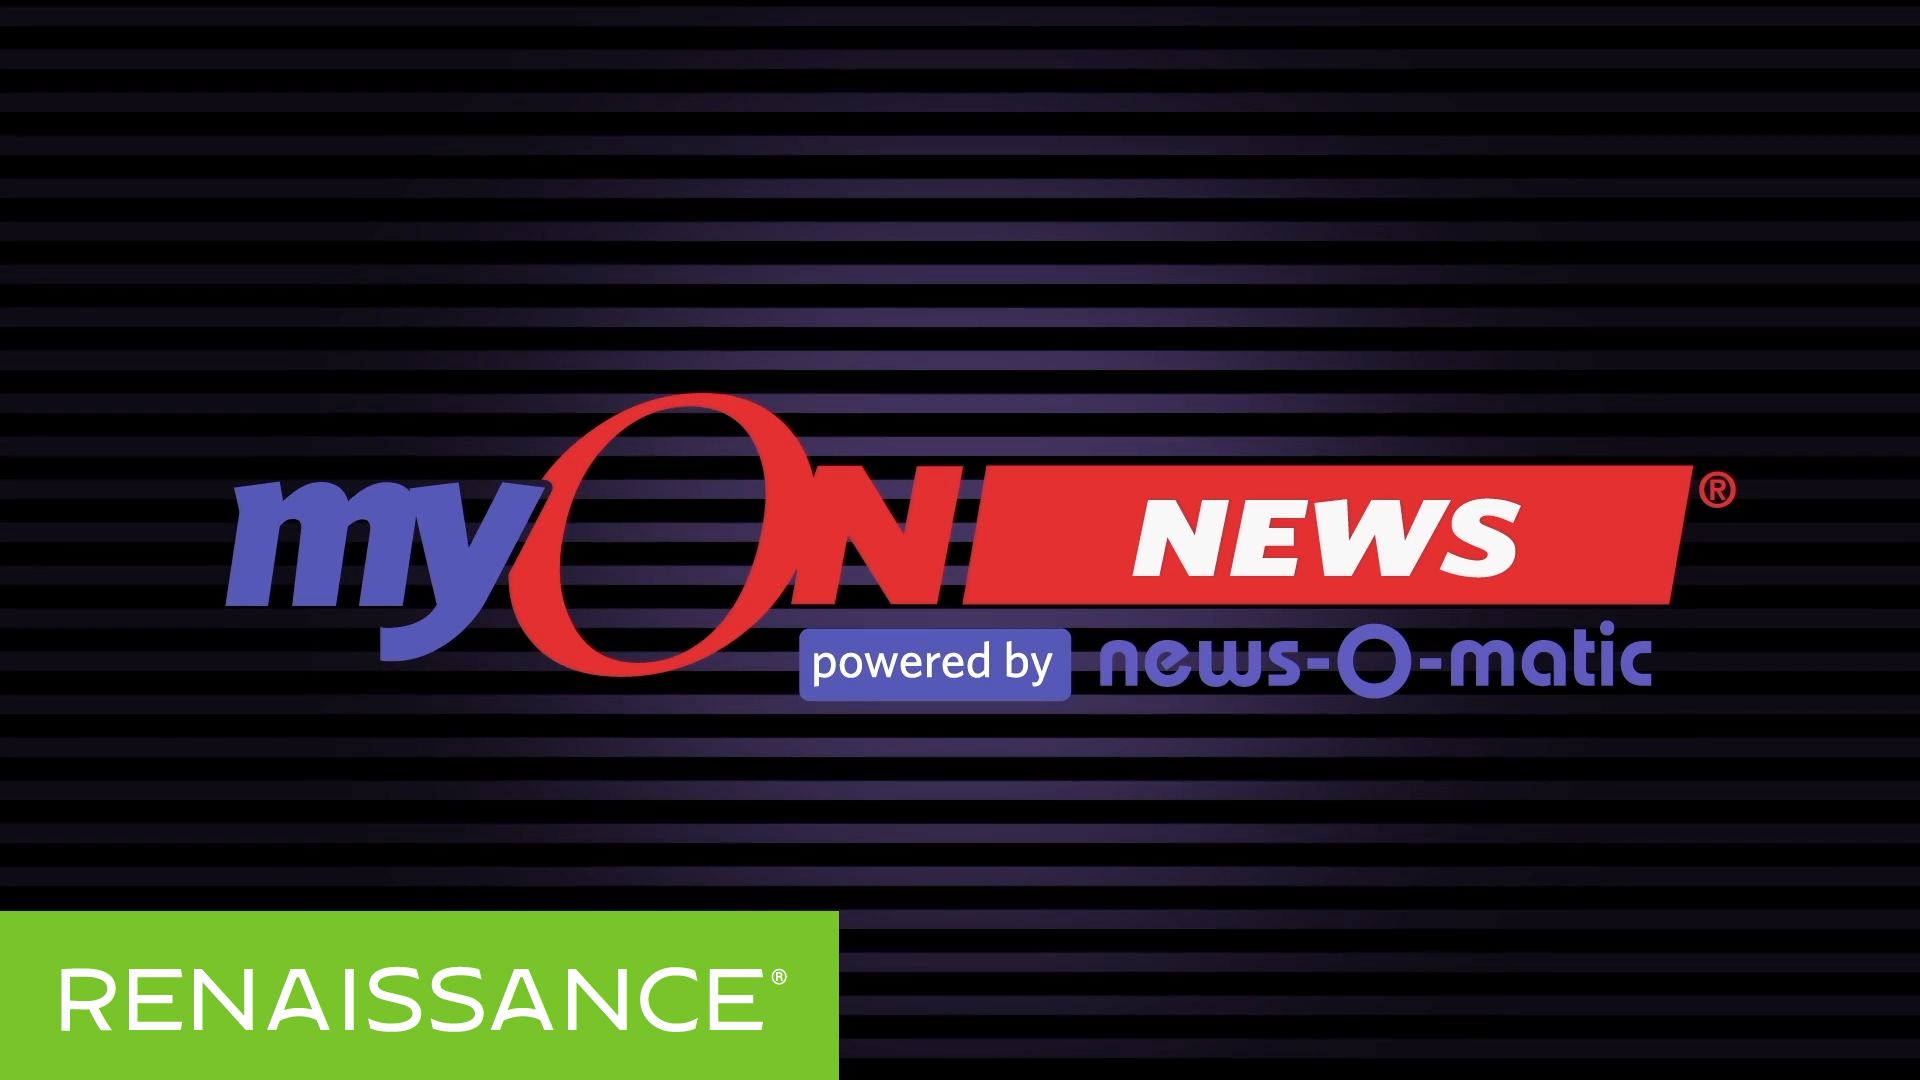 Renaissance myON News™, powered by News-O-Matic